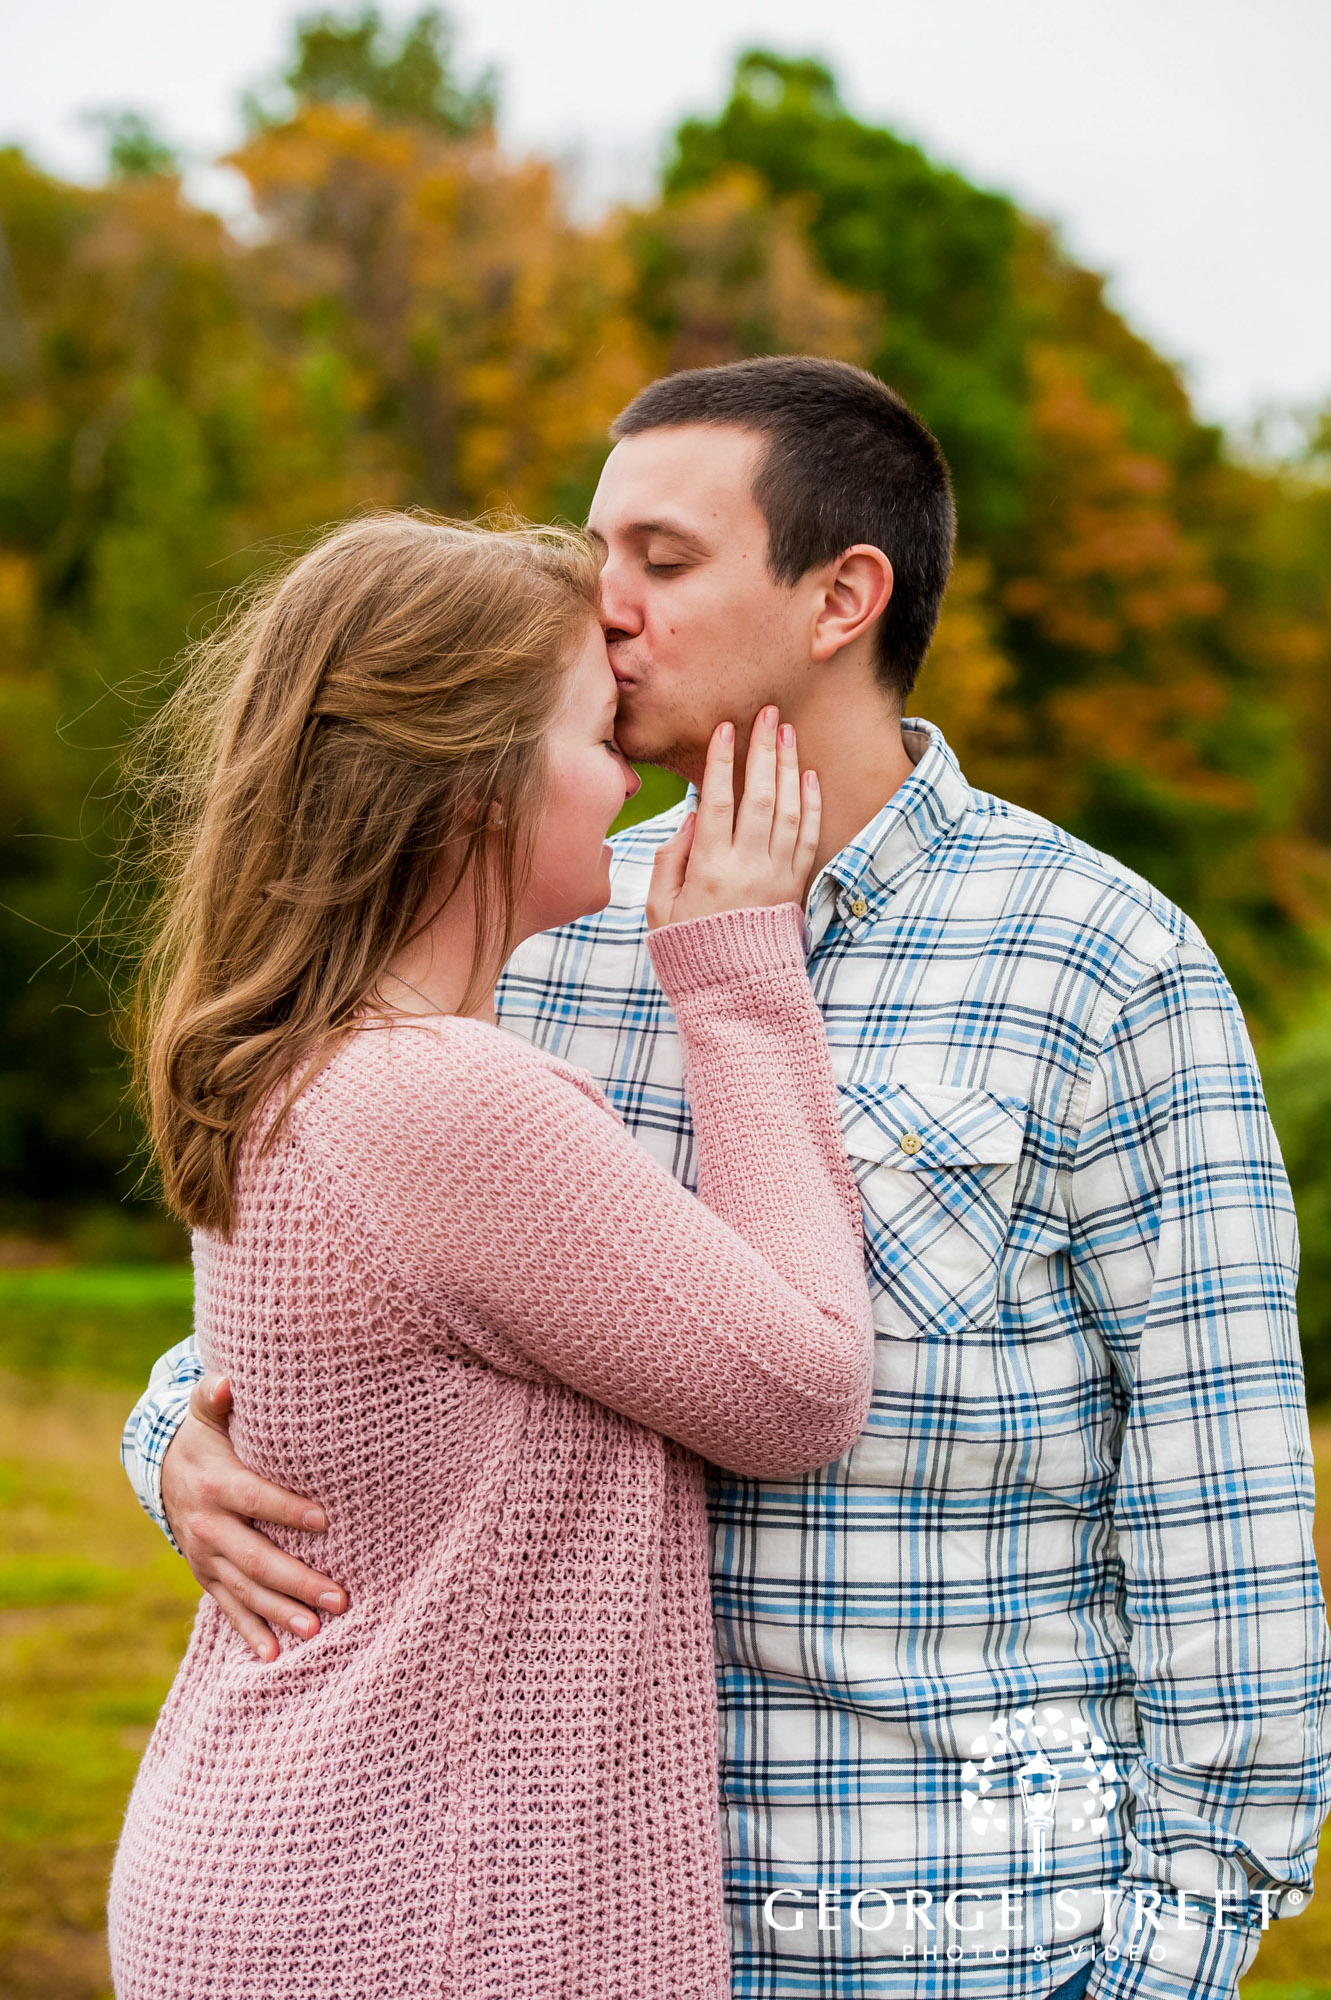 lyman orchards cute greenery sweater hartford engagement photography 3